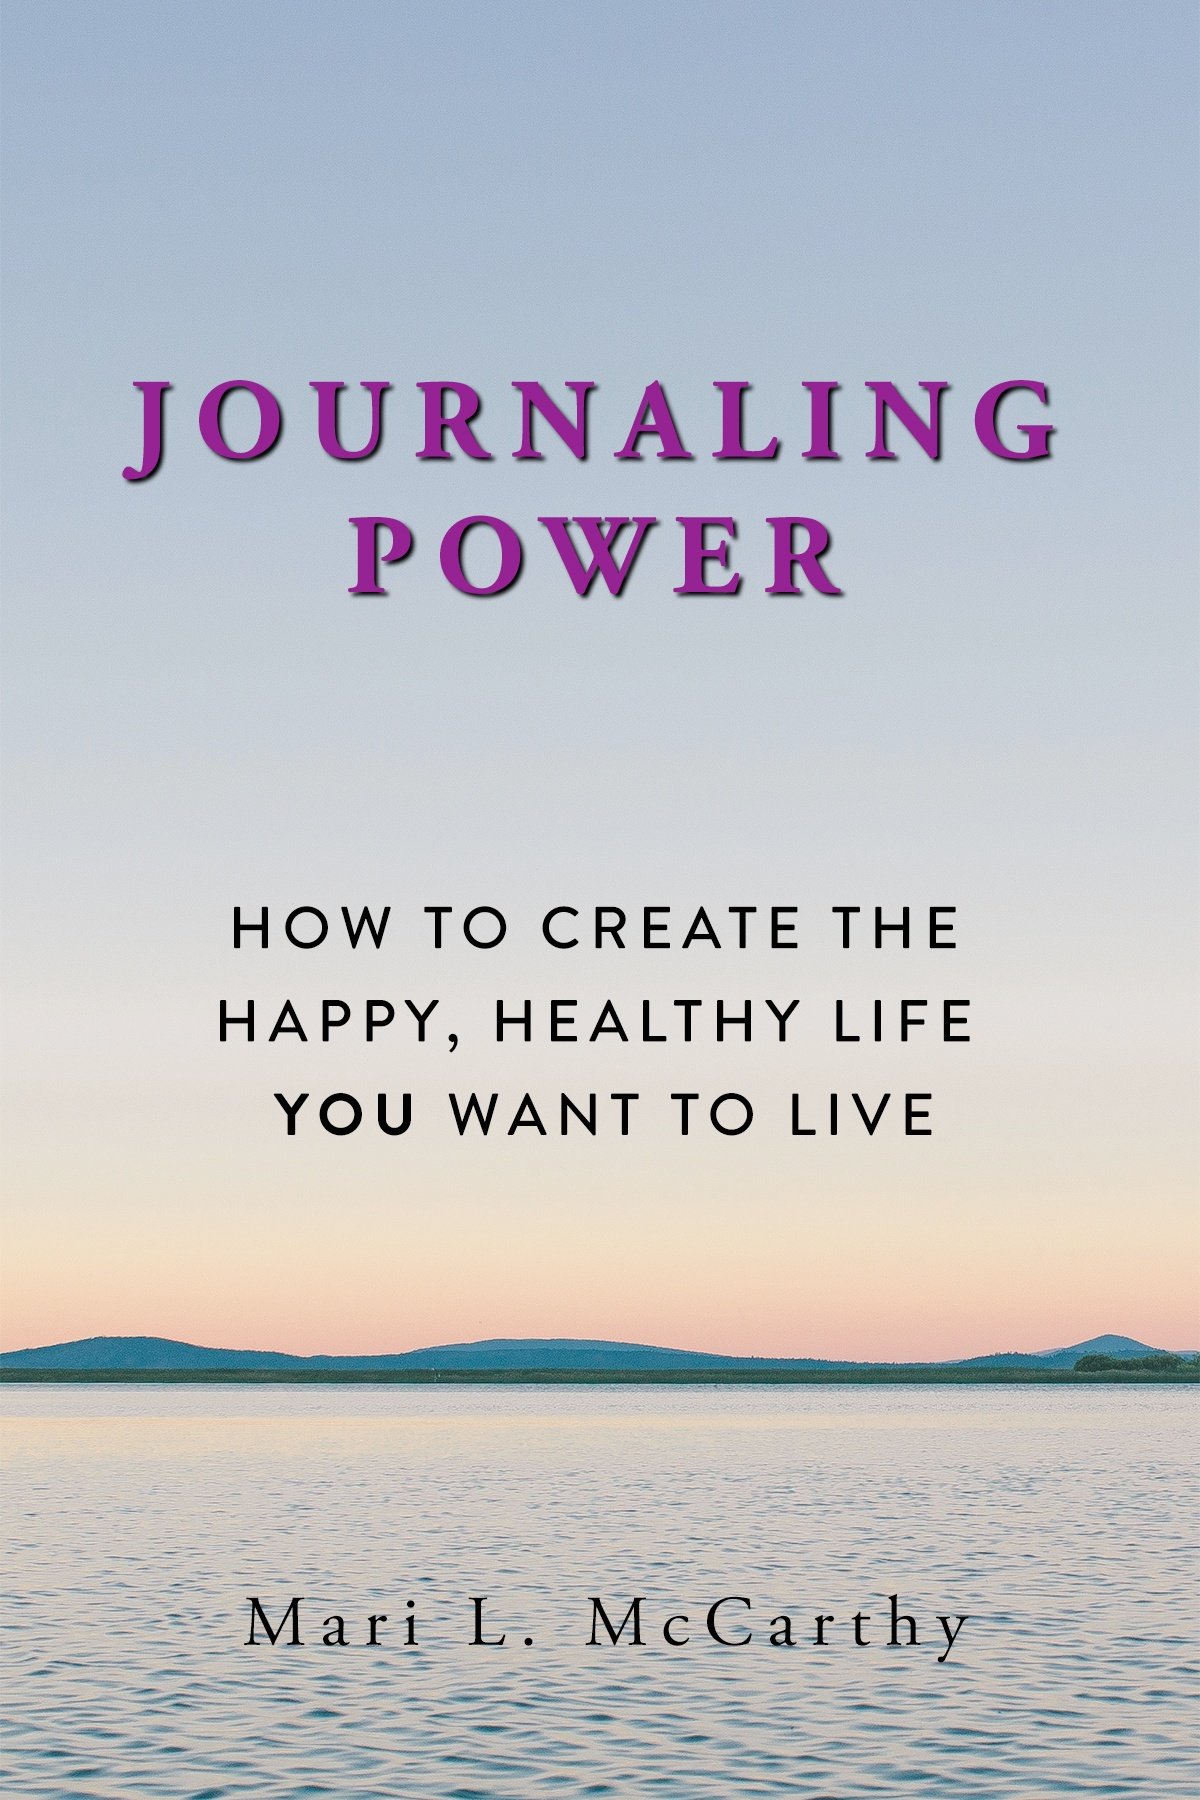 Journaling Power: How to Create the Happy, Healthy Life You Want to Live - Book written by Mari L. McCarthy